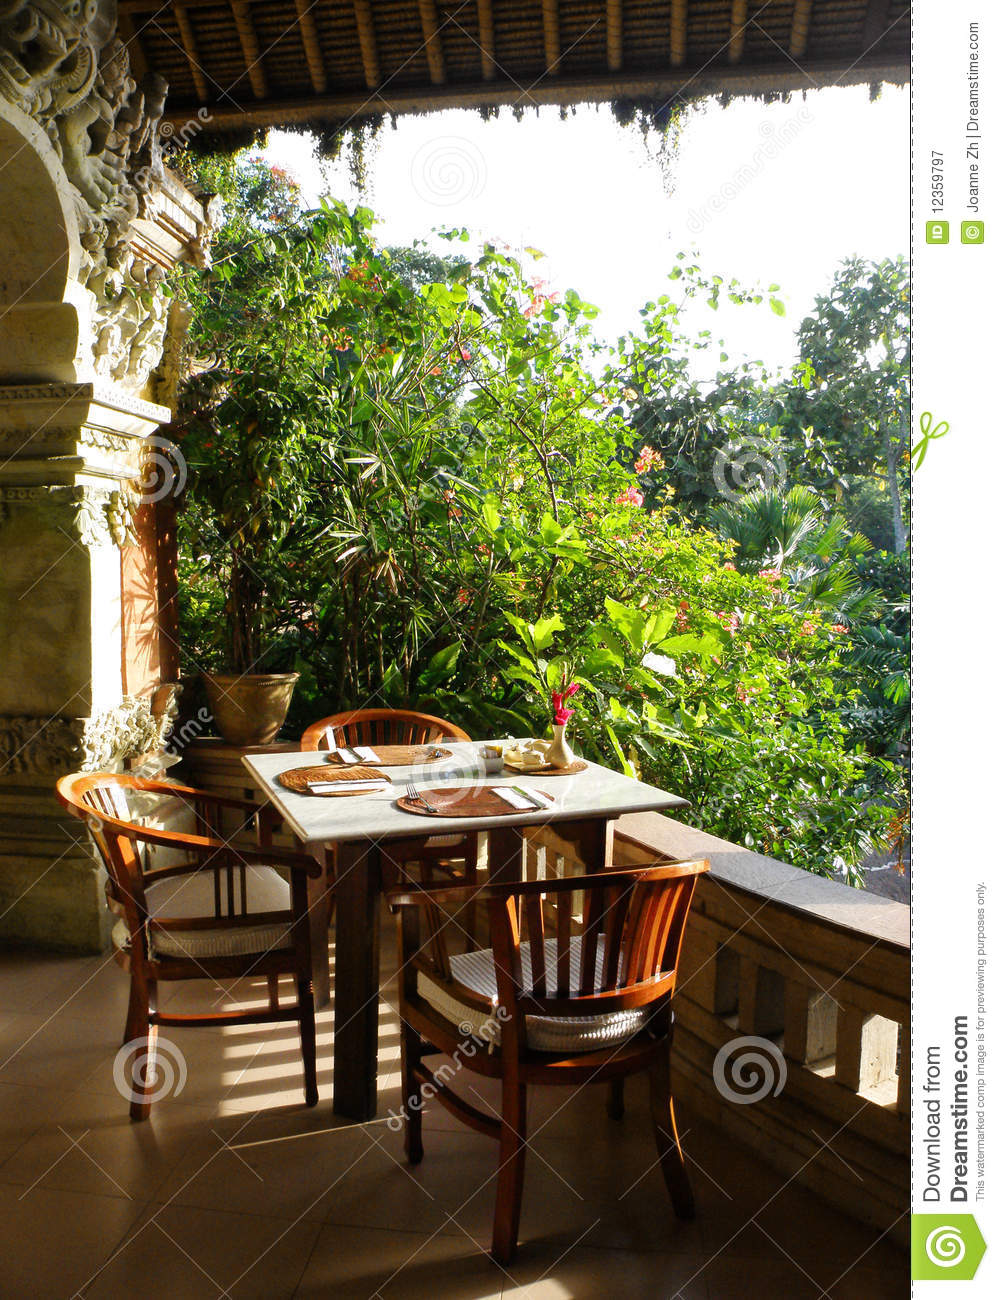 Tropical Outdoor Dining Patio Royalty Free Stock